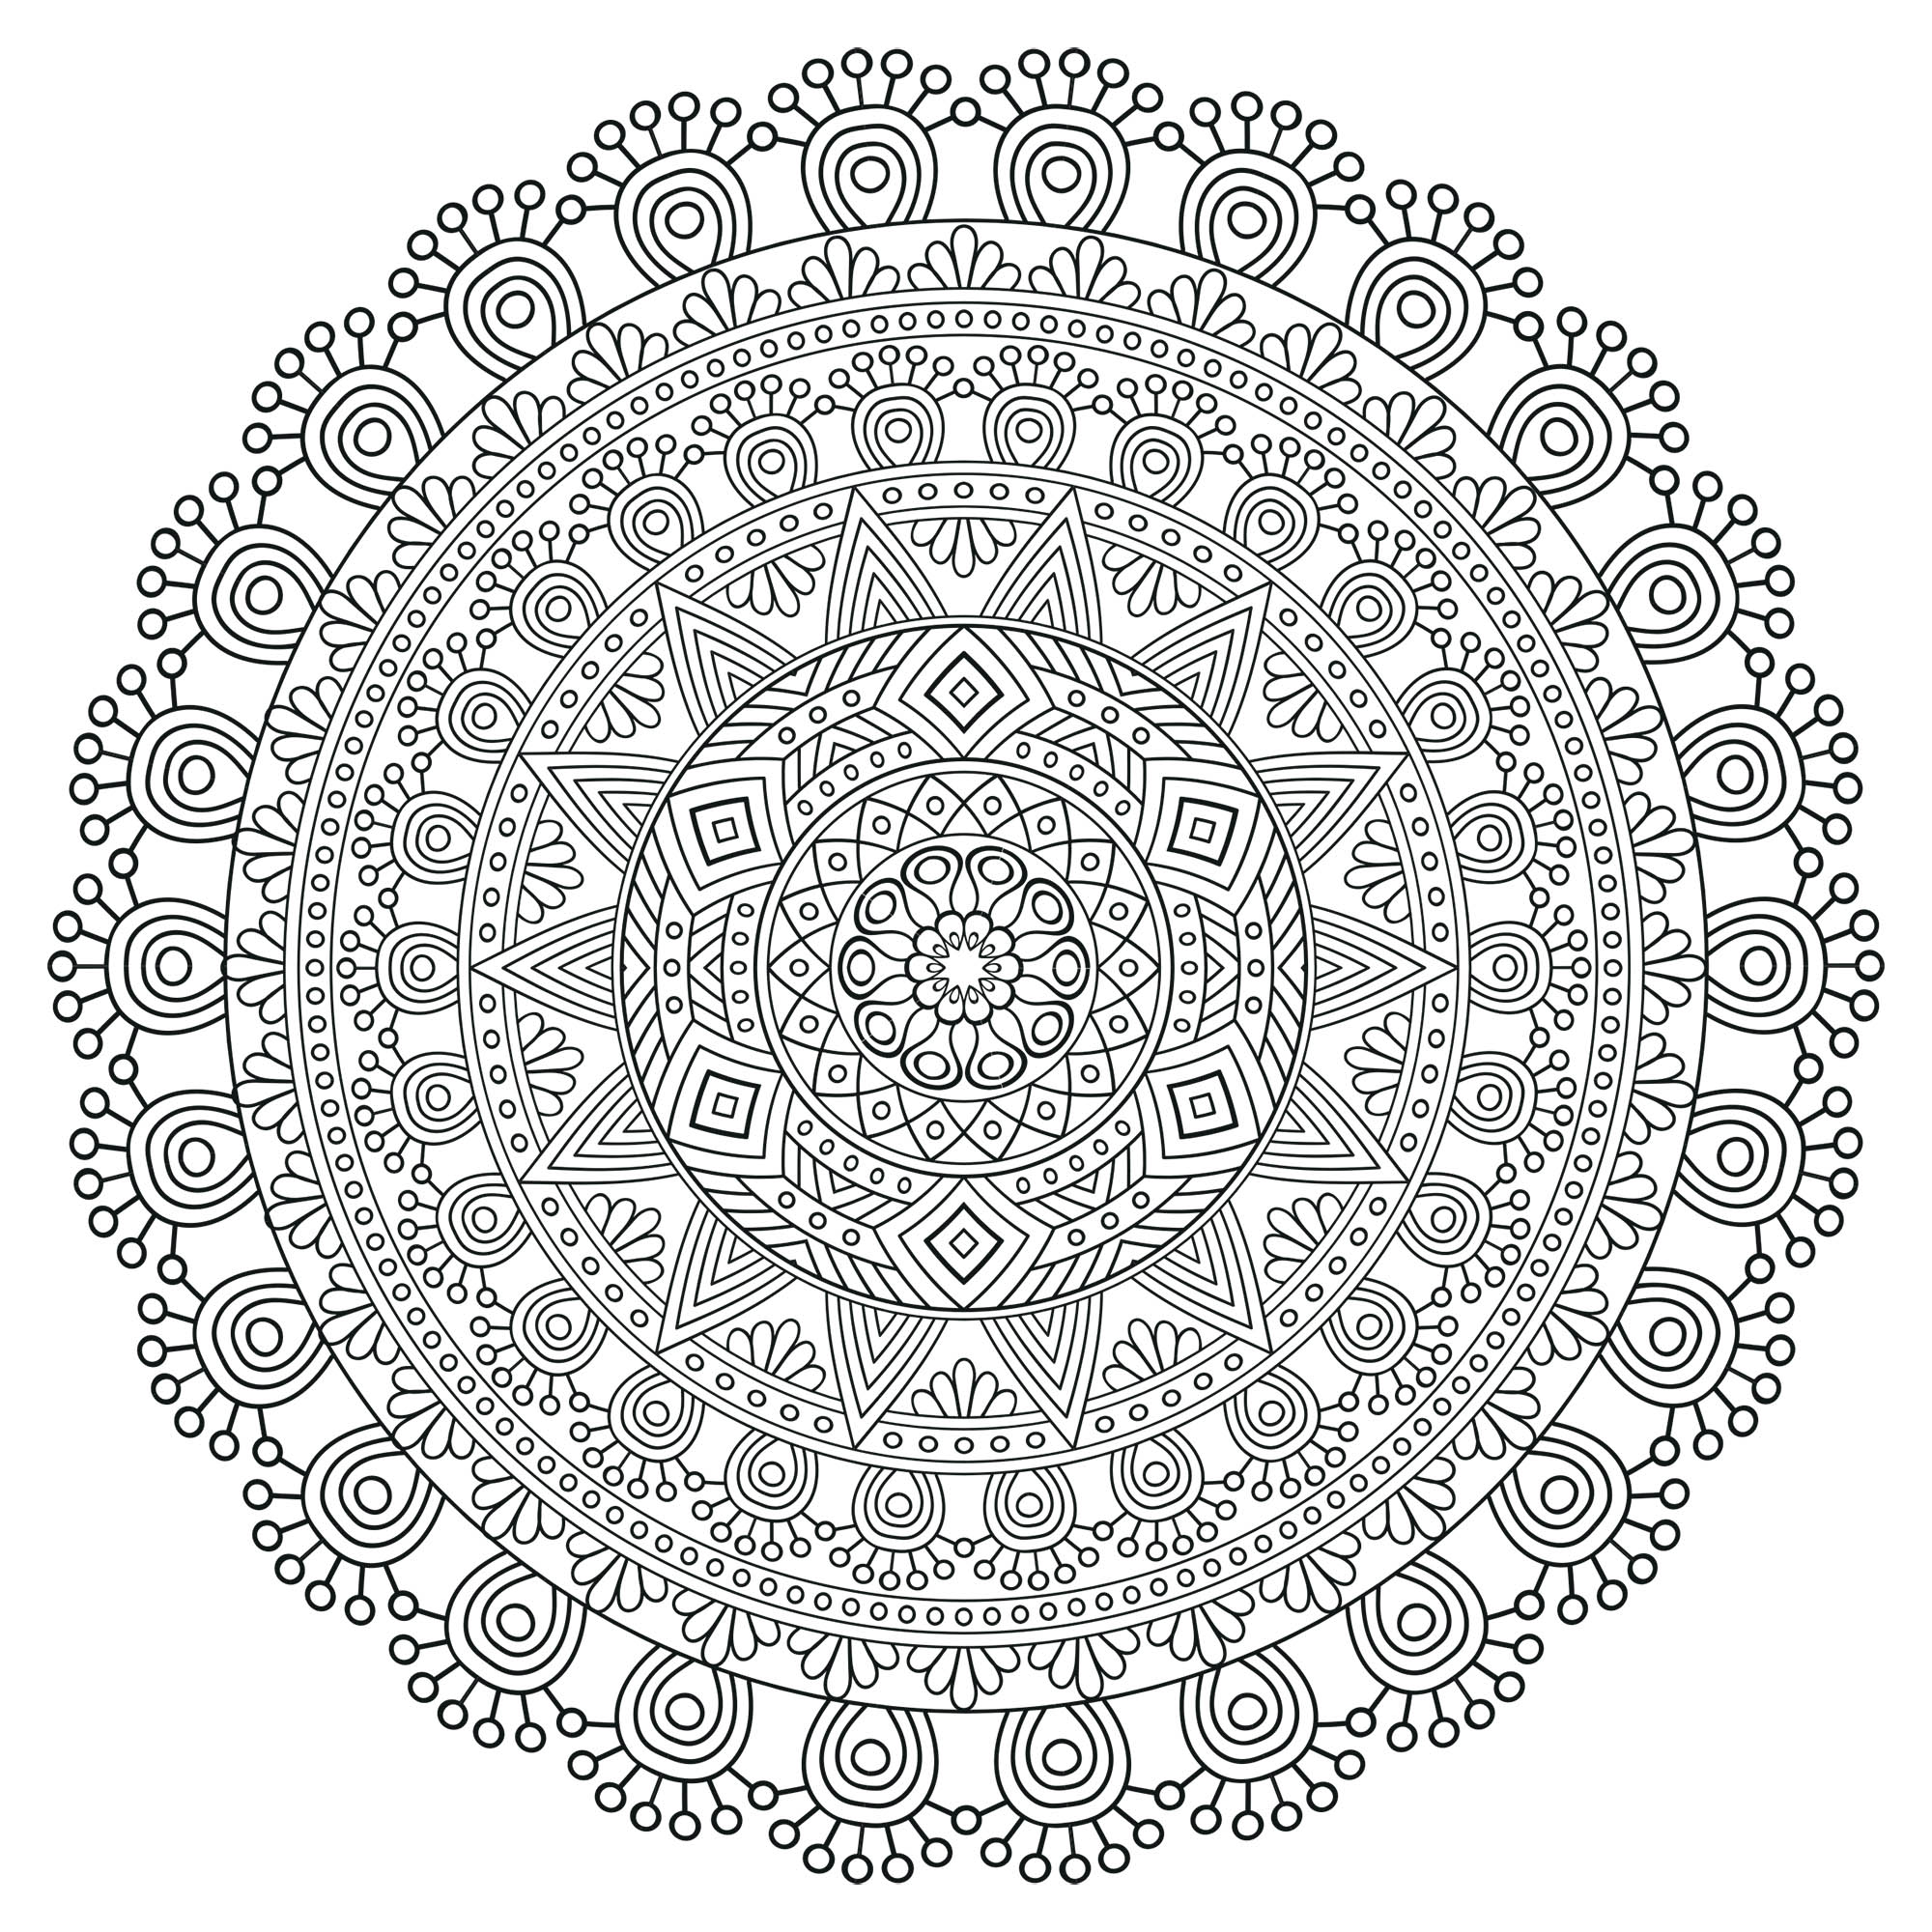 This Mandala coloring page is really very difficult, with all its levels ! Some patterns are repeated, others have small variations, which make it all very intriguing. Courage, you can complete it. We recommend colored pencils, fine tip pens, or gel pens.